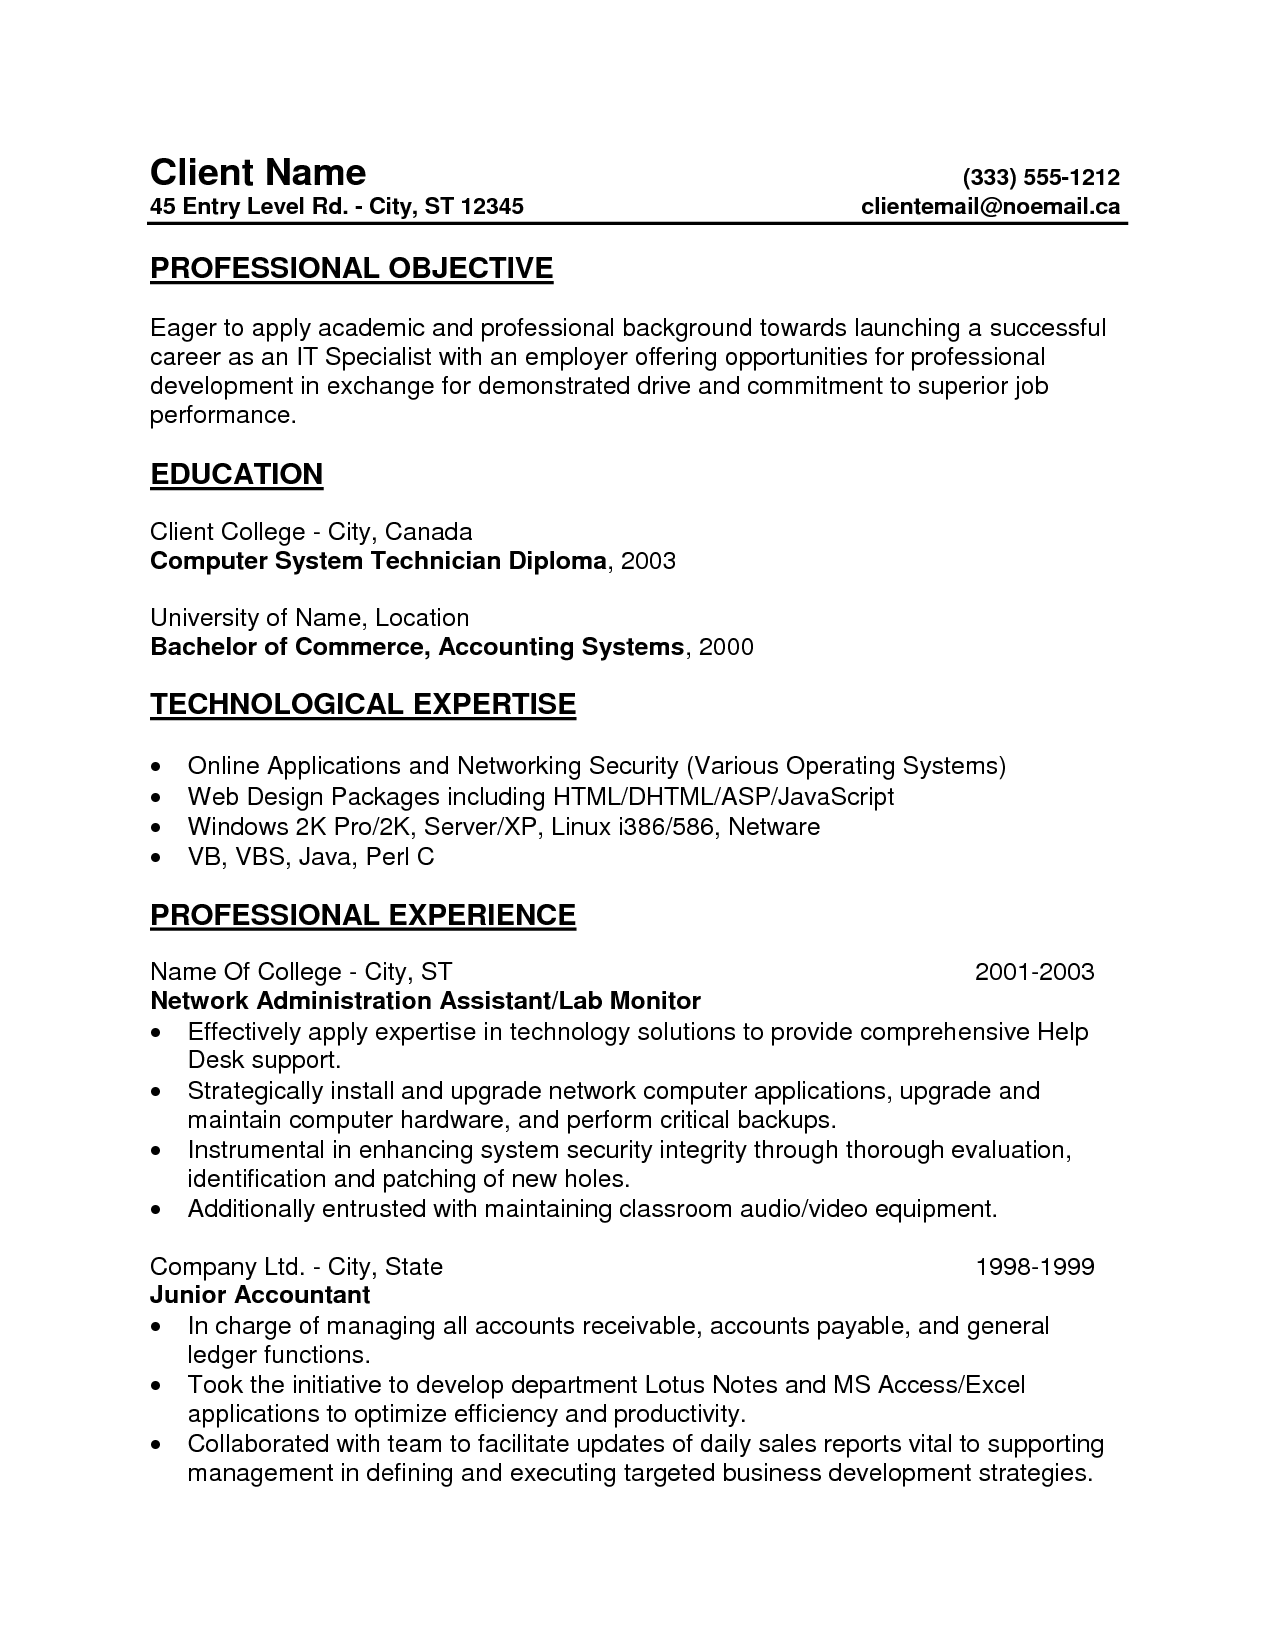 Resume Sample For Entry Level Job